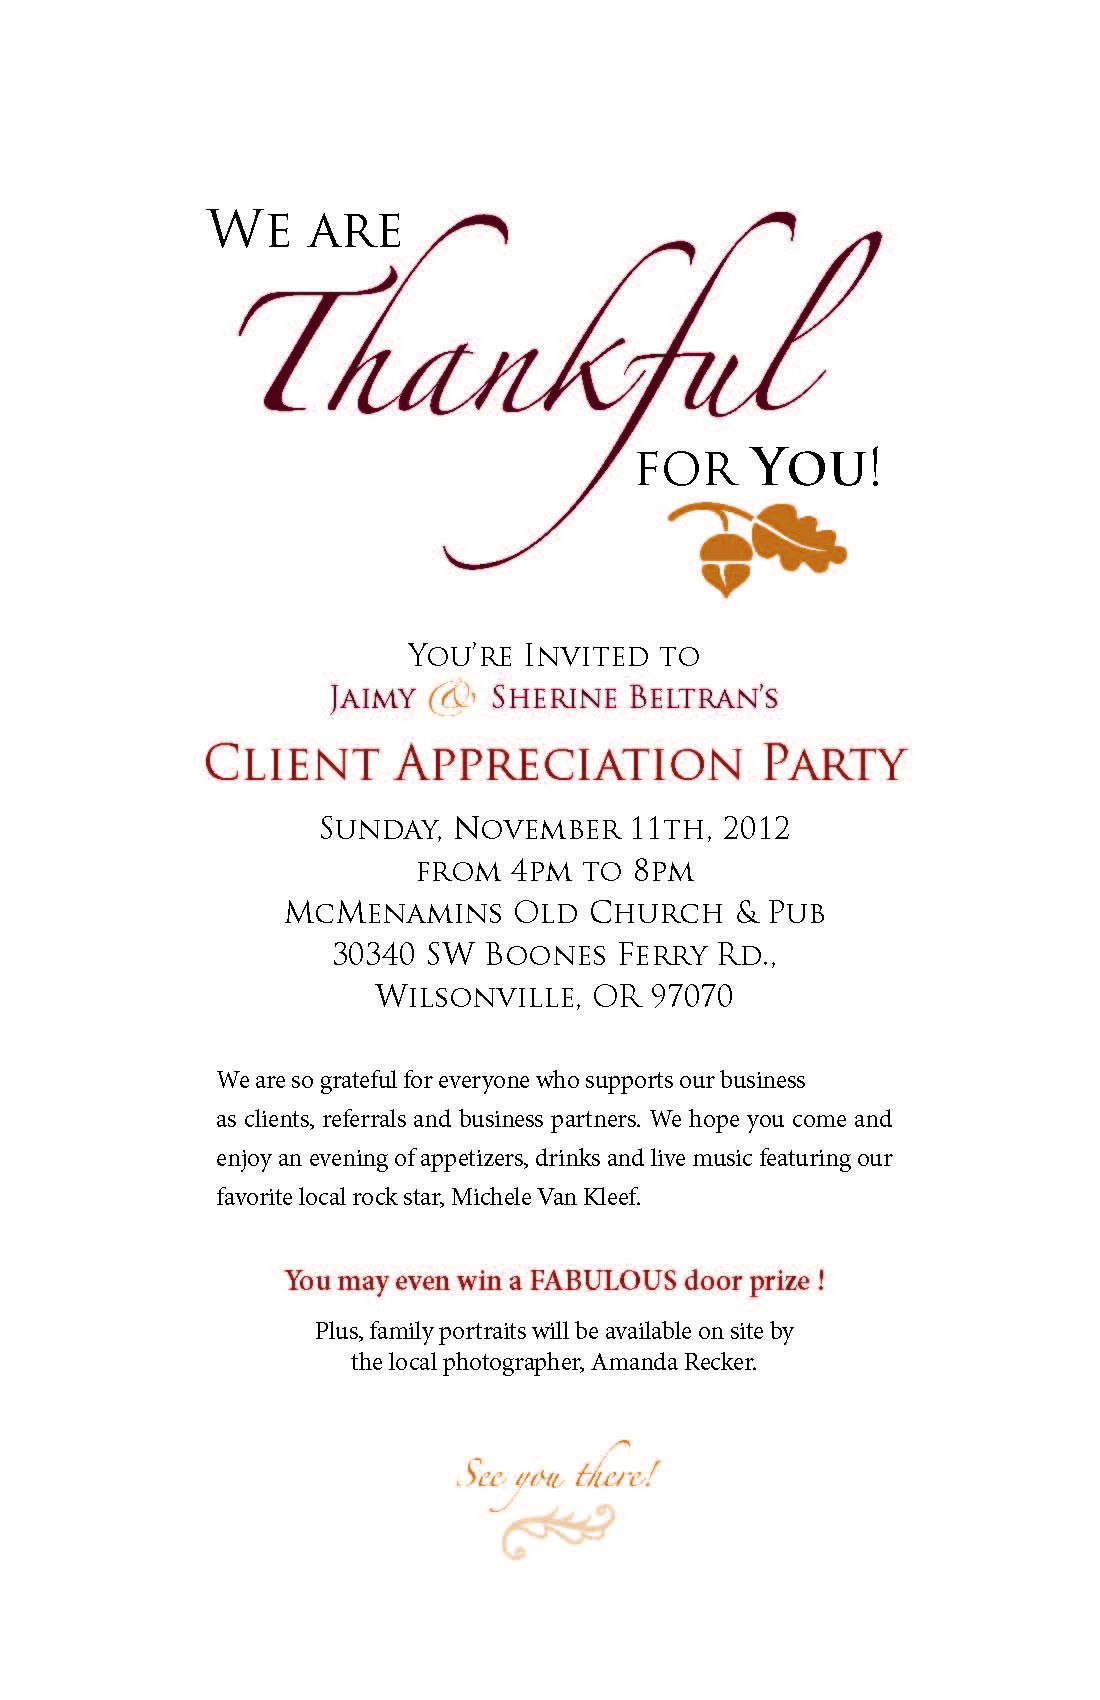 Client appreciation party invitations google search pinteres client appreciation party invitations google search more thecheapjerseys Images